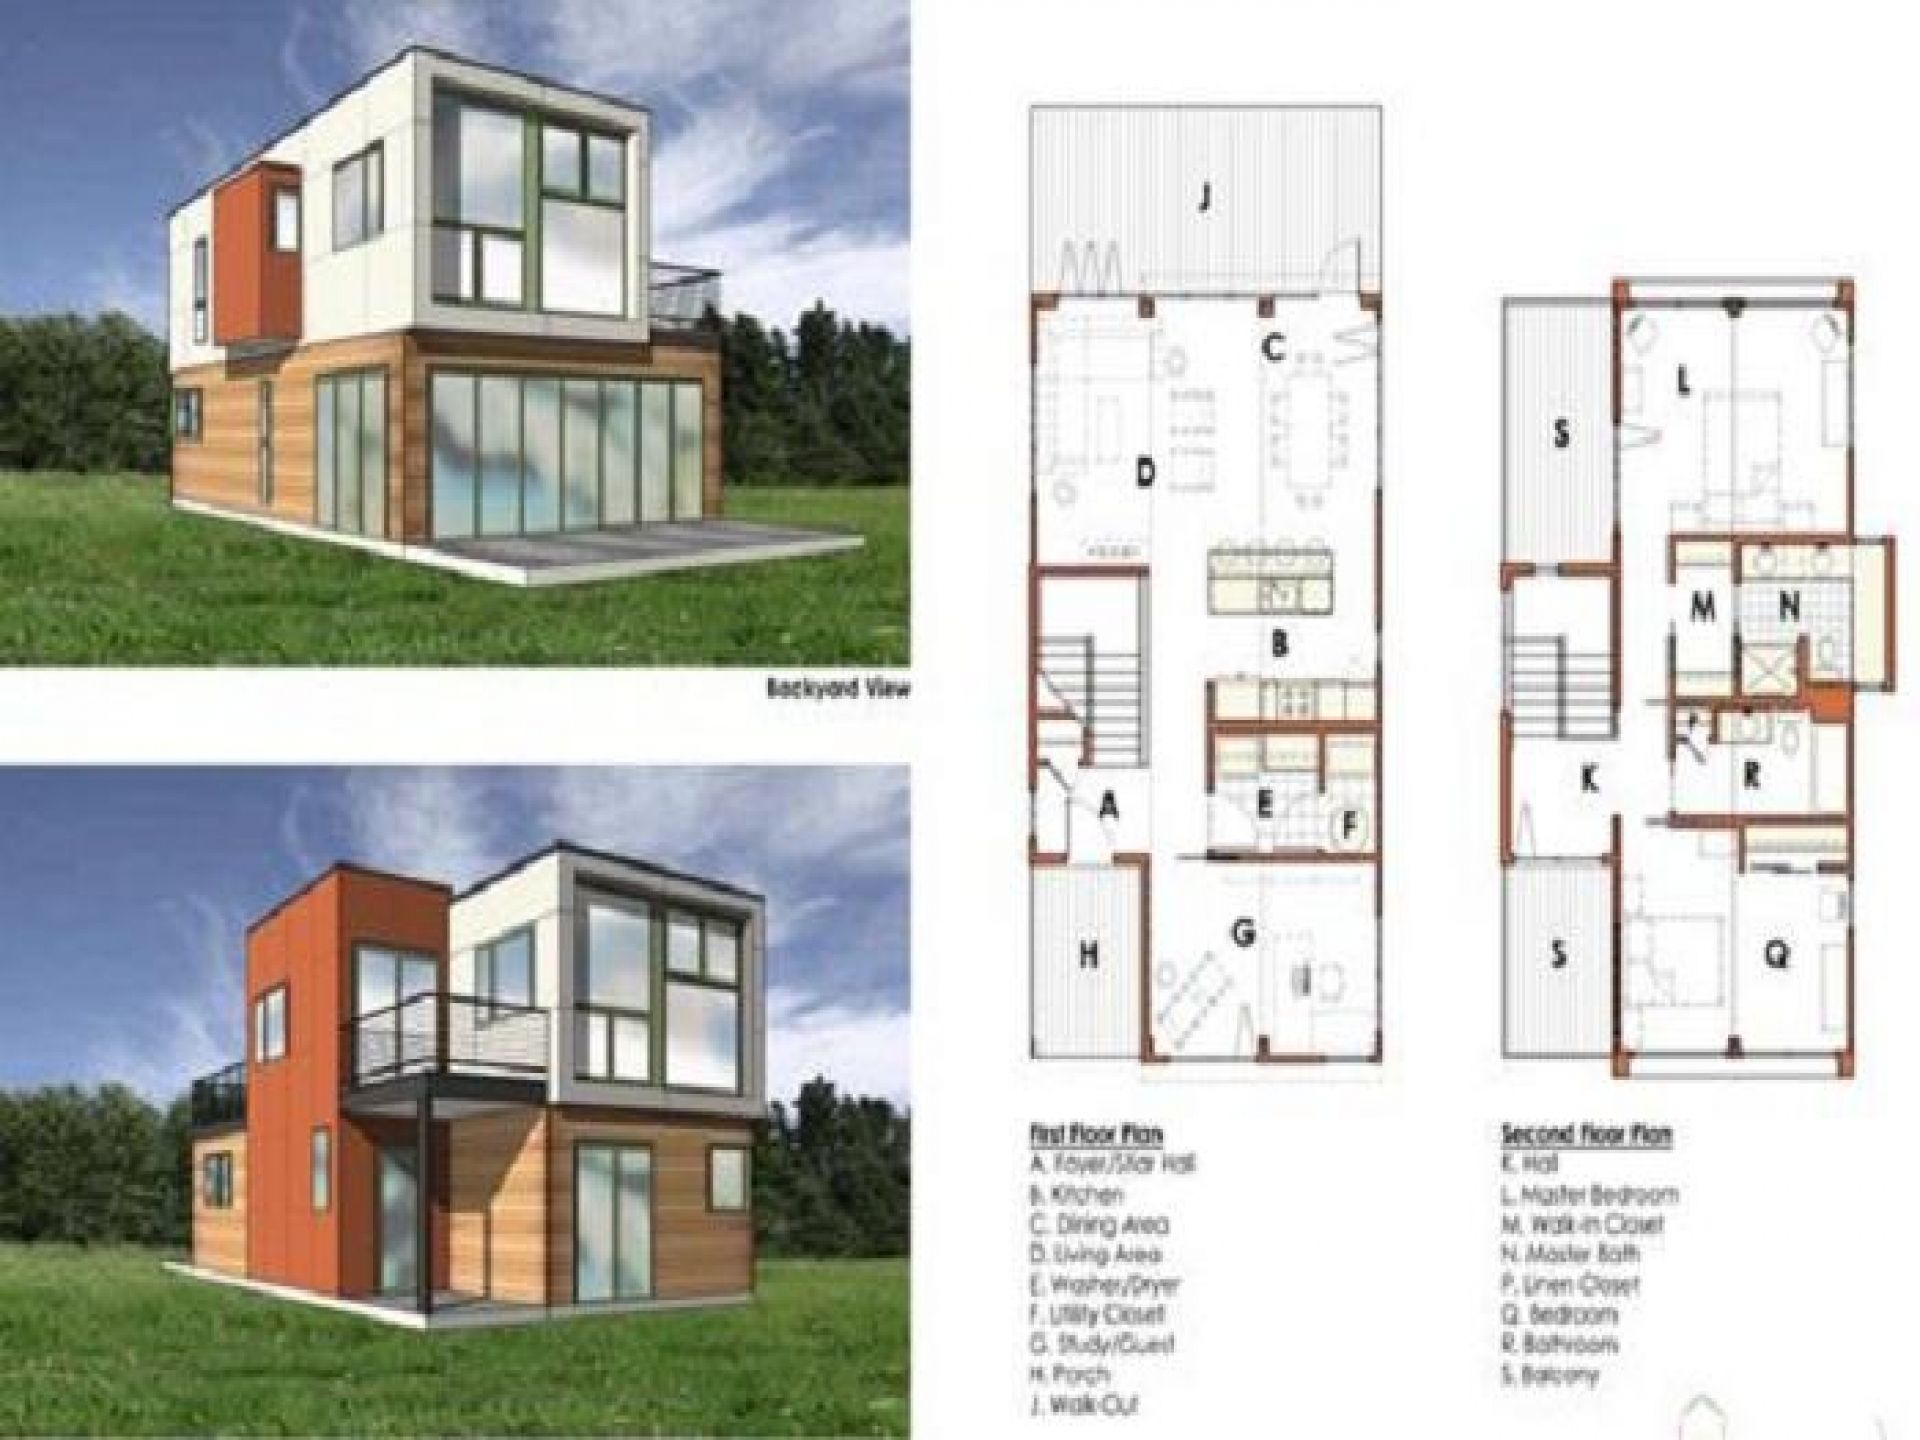 Container Homes Design Plans container home design 2: container home floor plans:,container